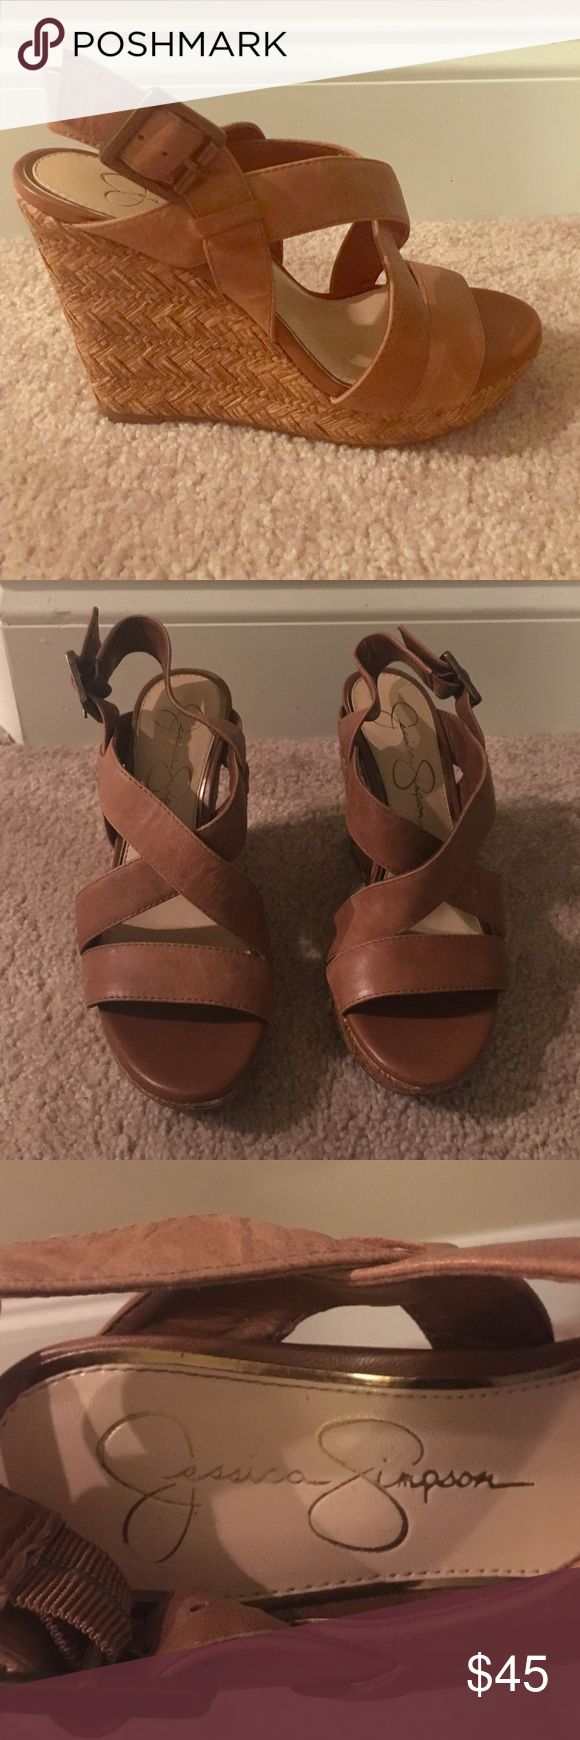 Jessica Simpson Wedges Only worn a few times!!! These are great comfortable wedges!! Jessica Simpson Shoes Wedges